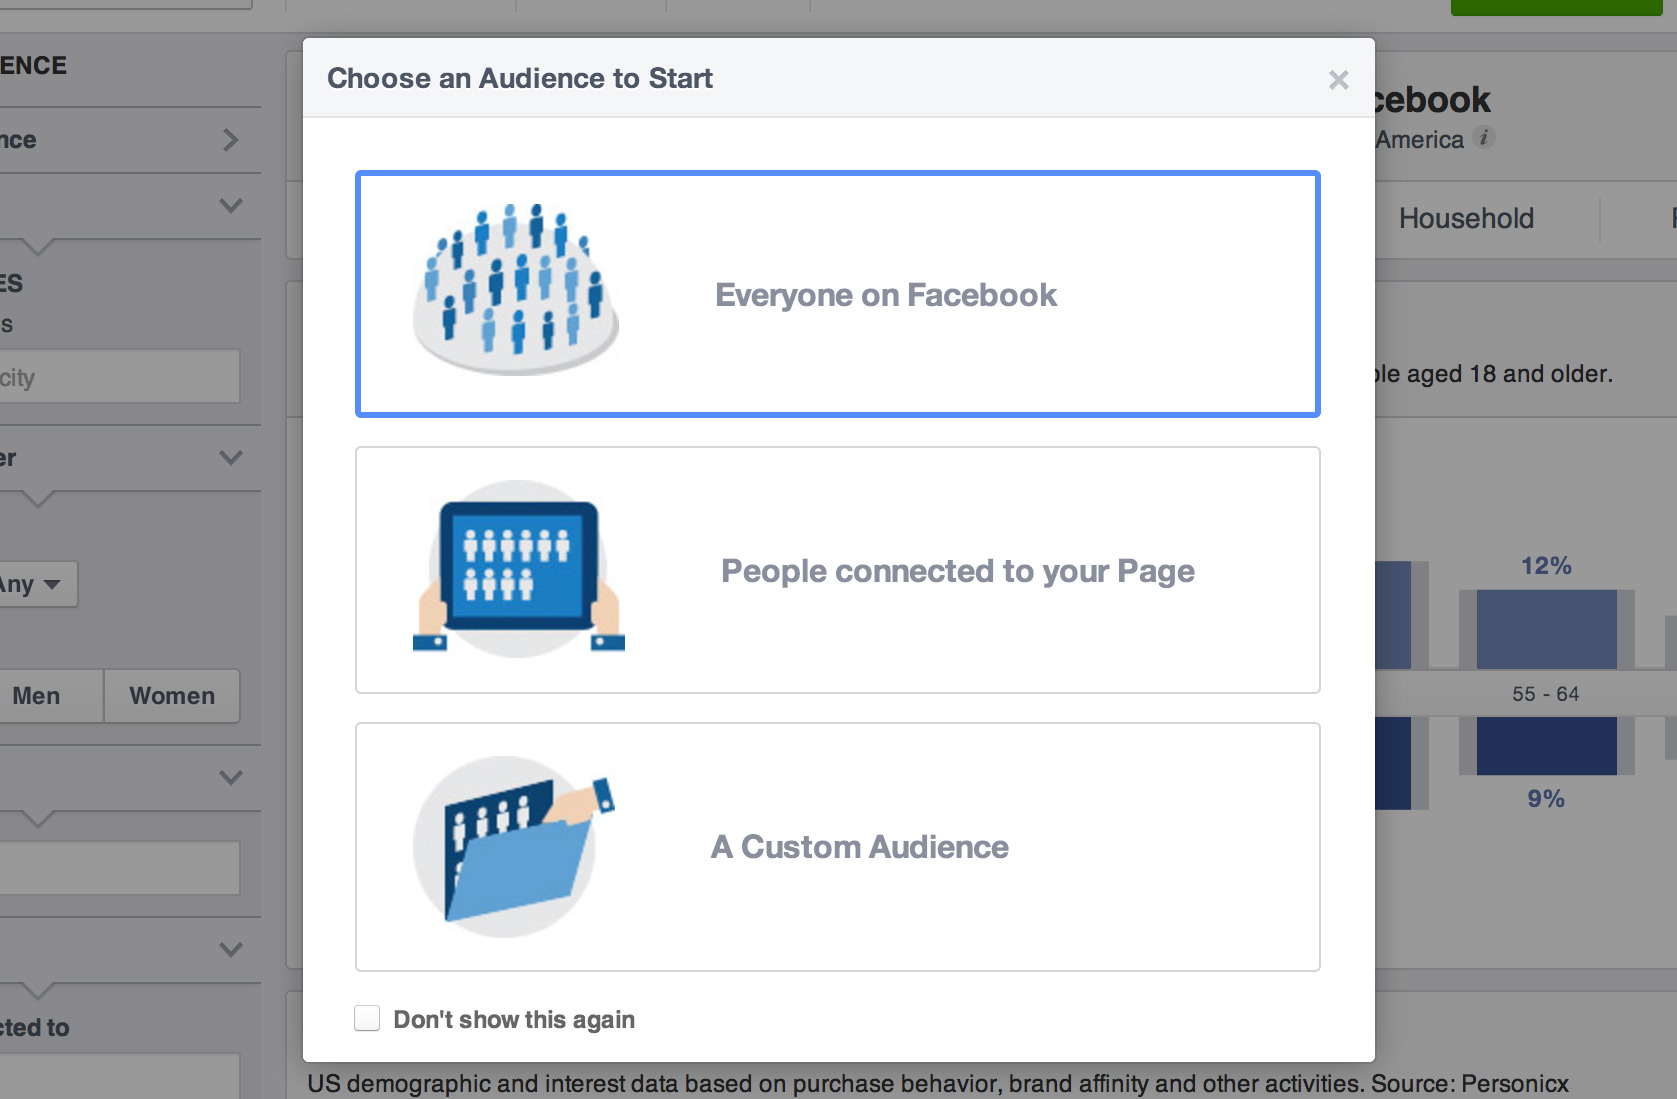 Facebook Audience Insights - Choose an Audience to start